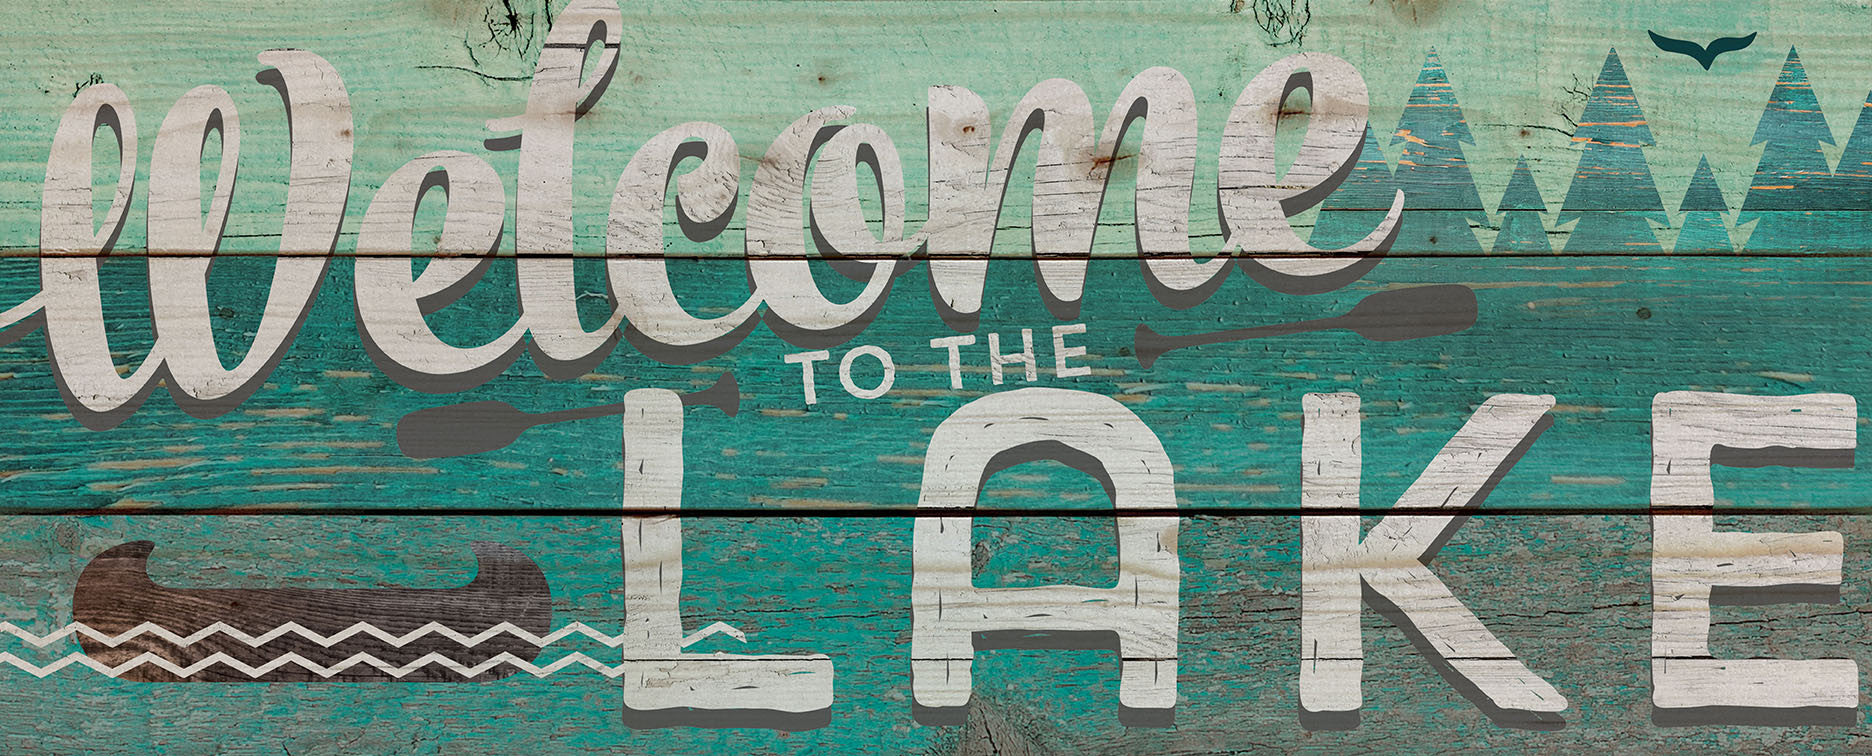 Pallet Art: Welcome To The Lake - 10 5x26